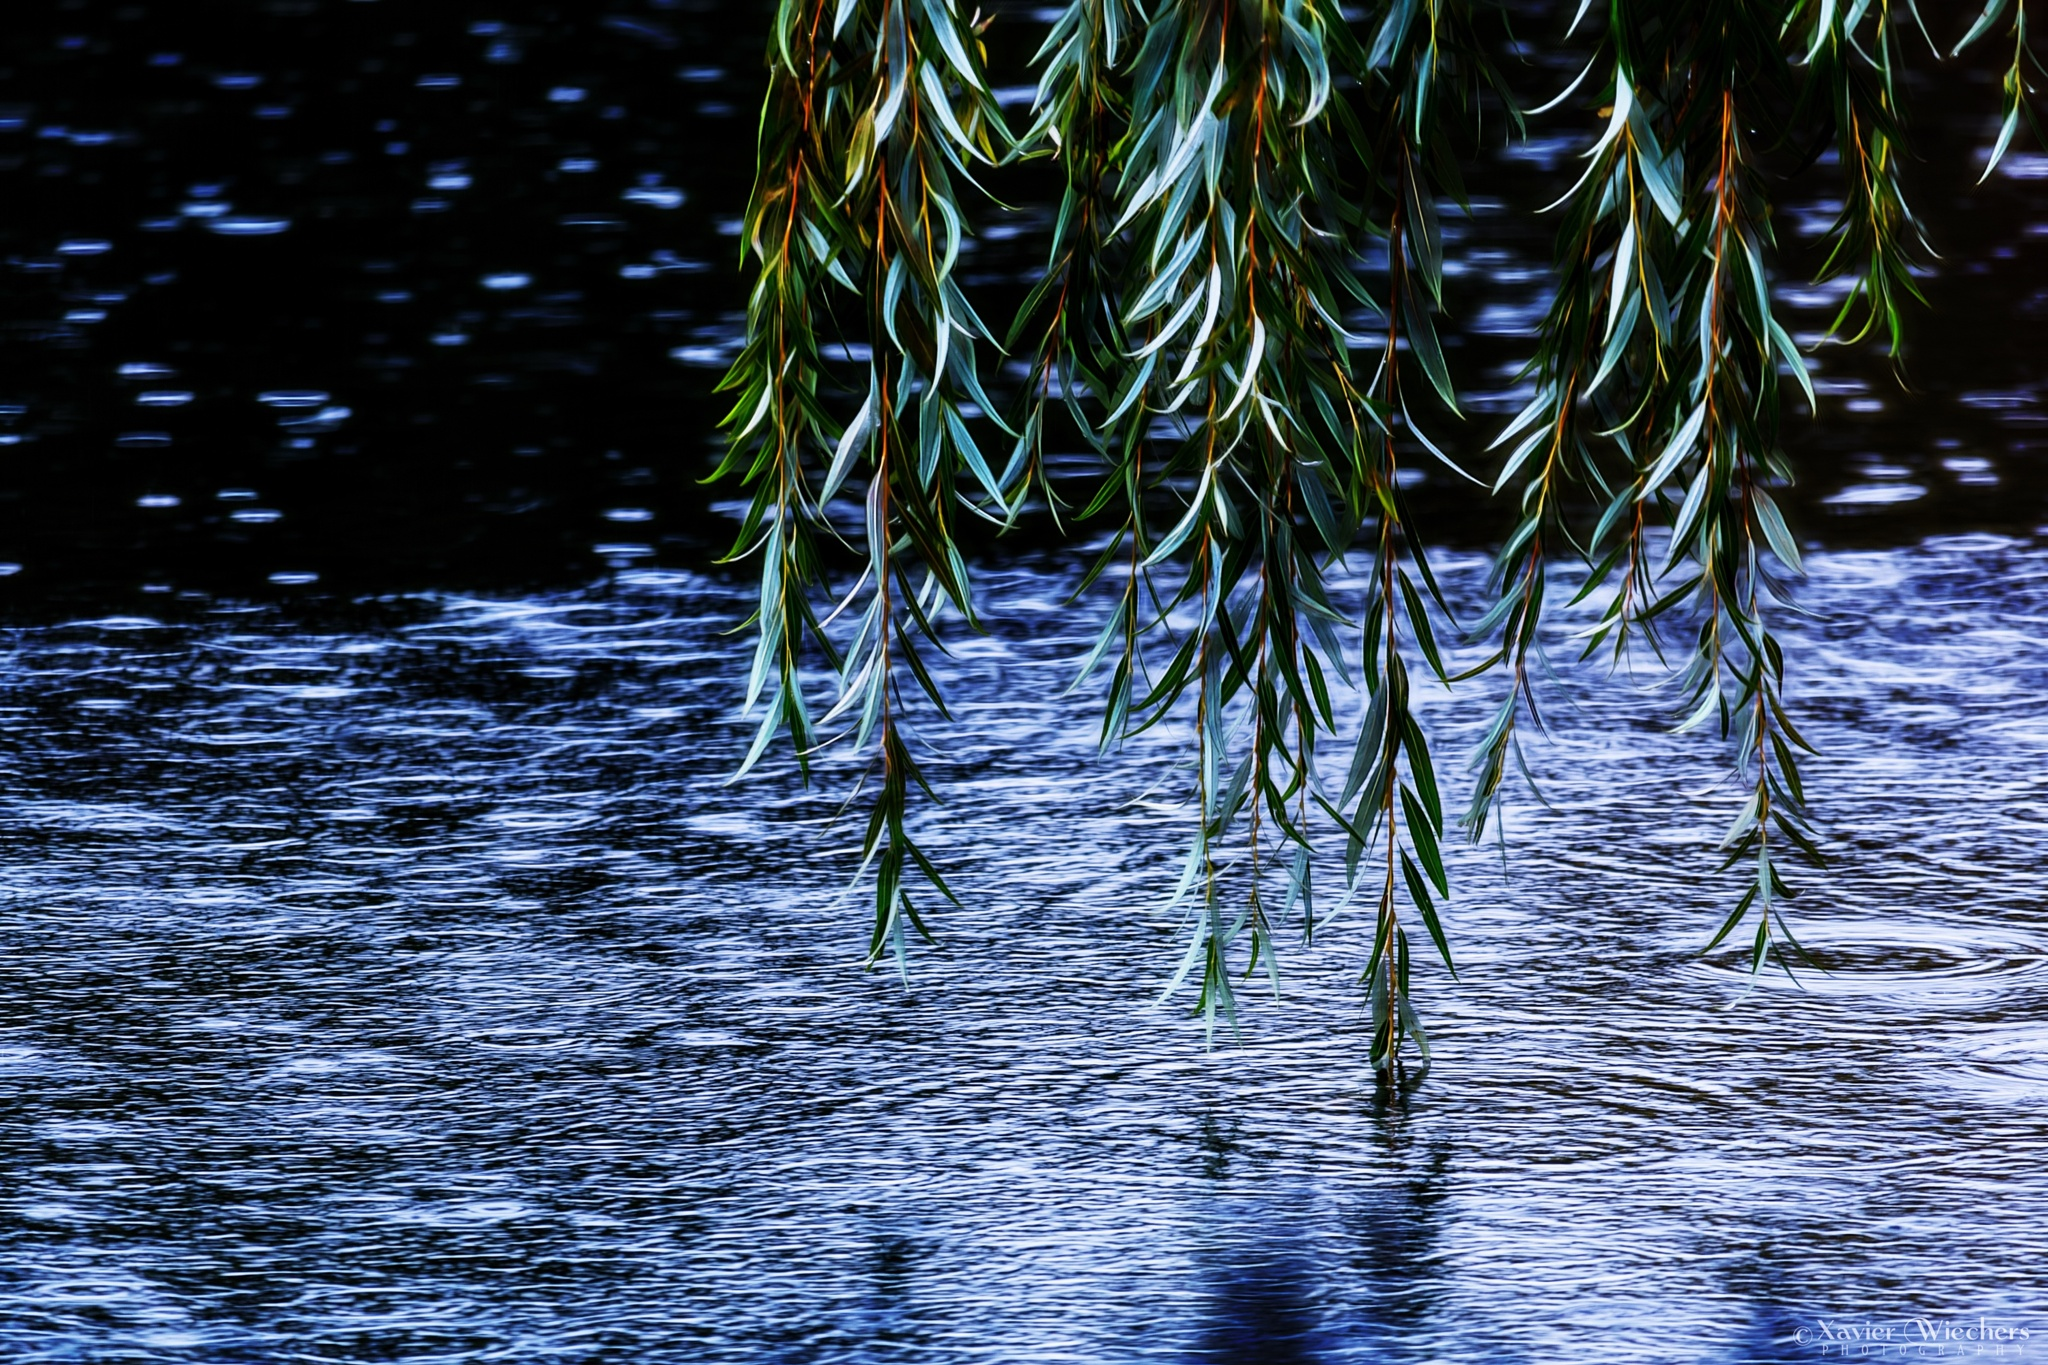 VanDusen Weeping Willow Tree and Water by xwiechers